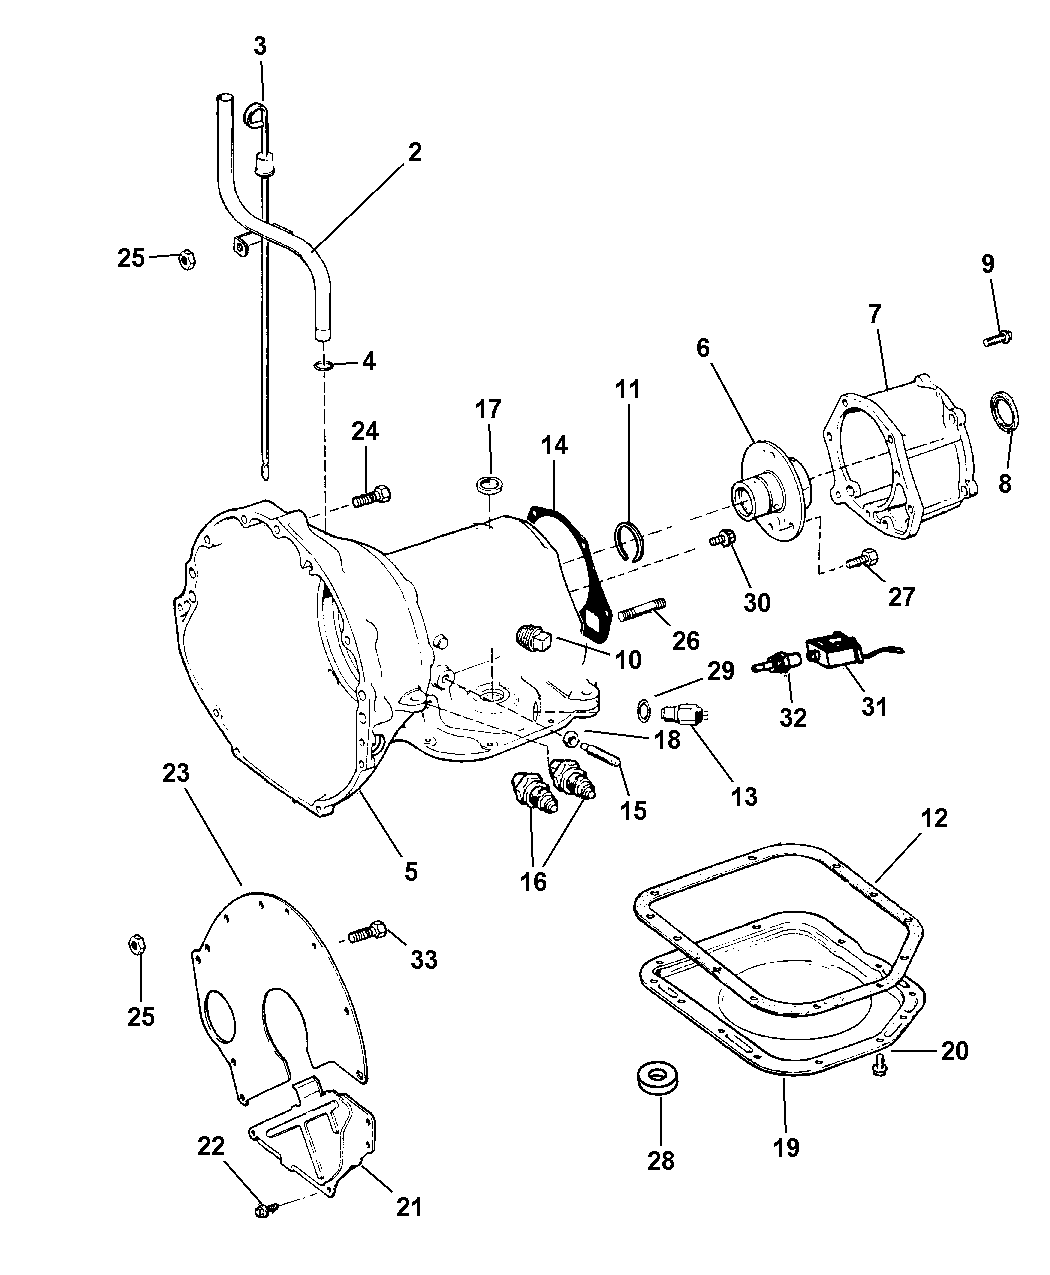 1997 Jeep Wrangler Case & Related Parts - Thumbnail 1